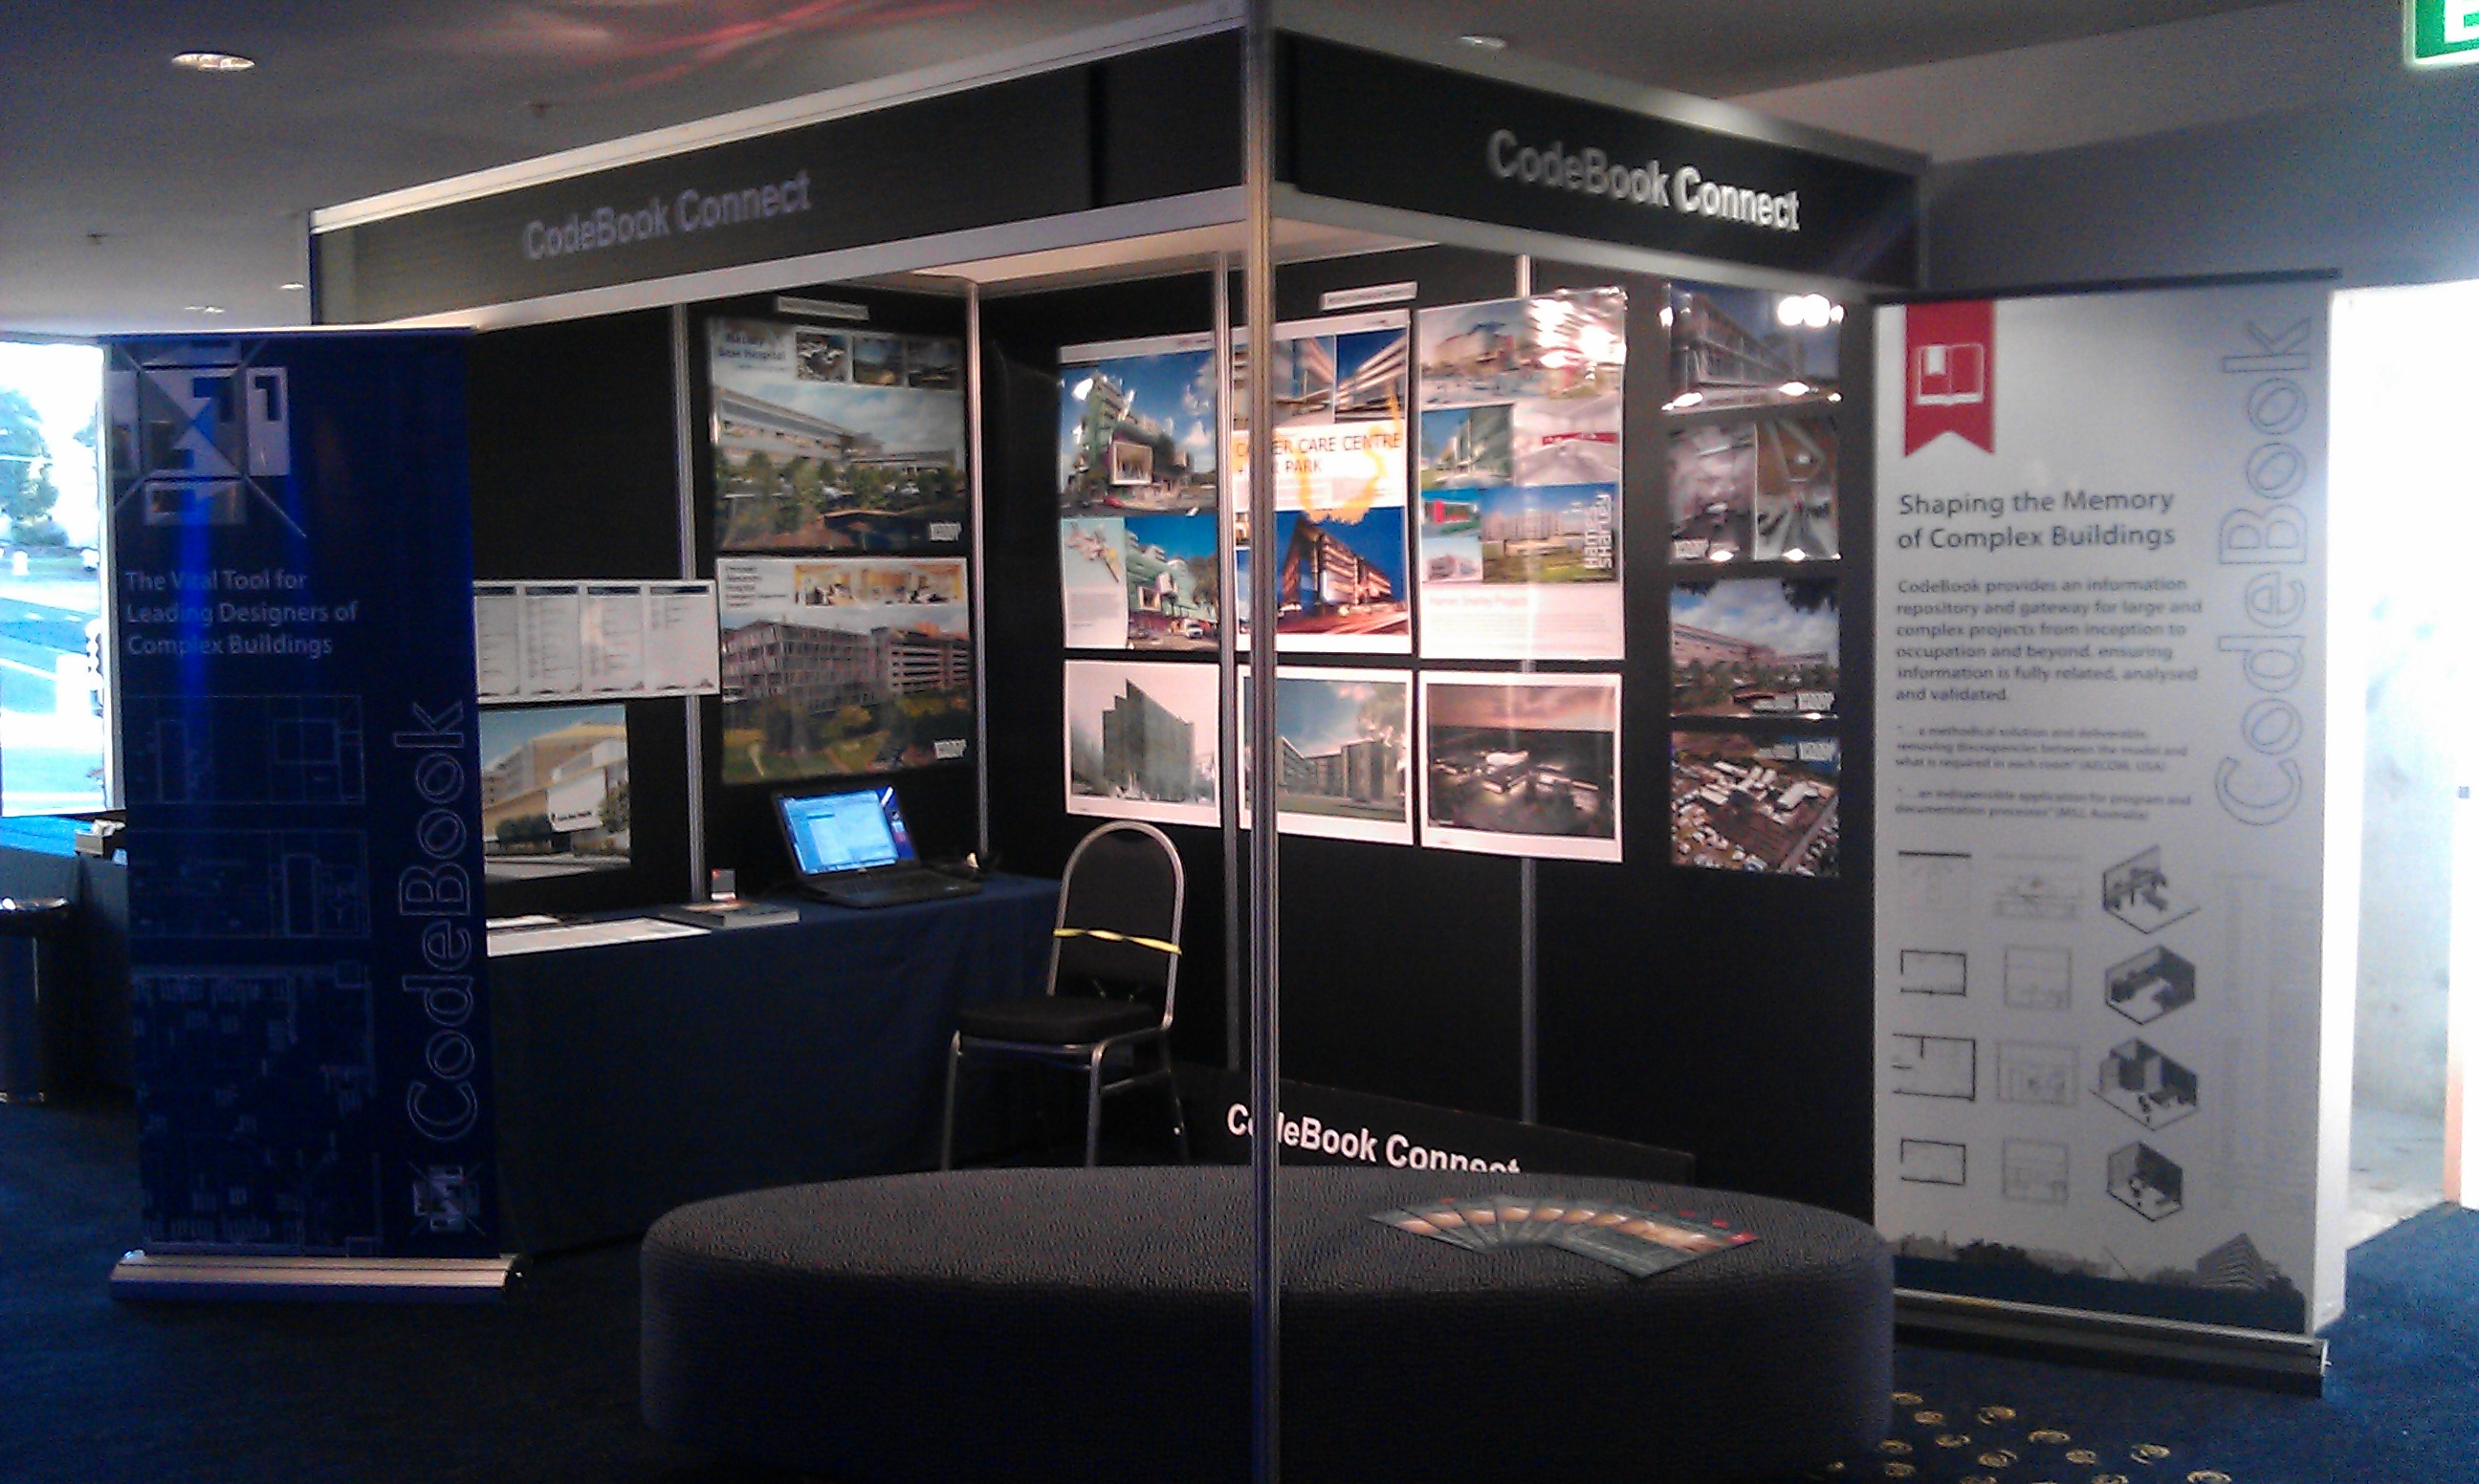 CodeBook Connect stand at RTC 2012 Australasia